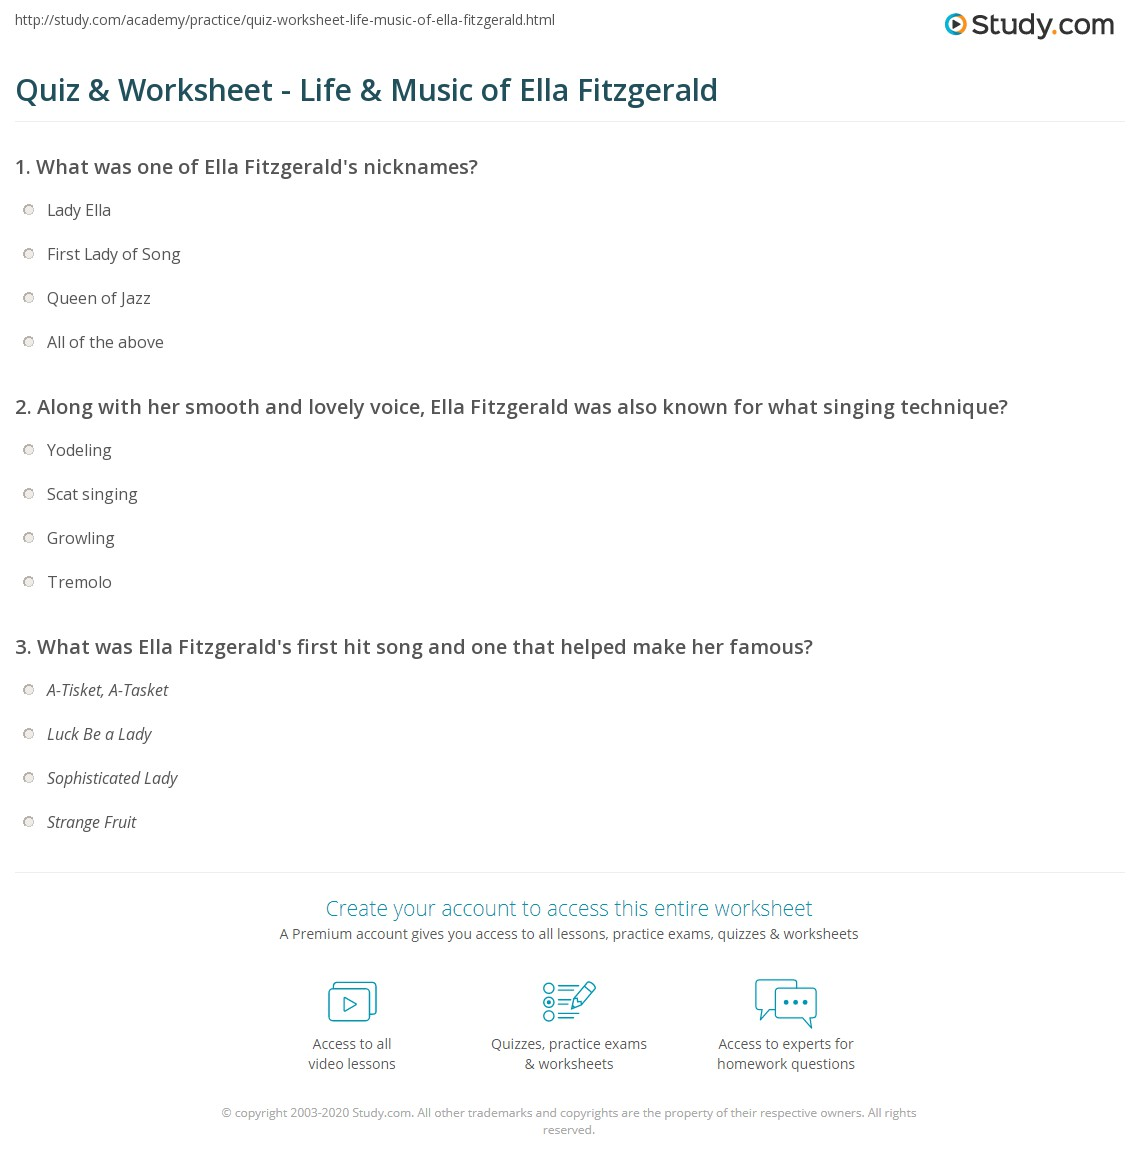 Quiz & Worksheet - Life & Music of Ella Fitzgerald | Study.com